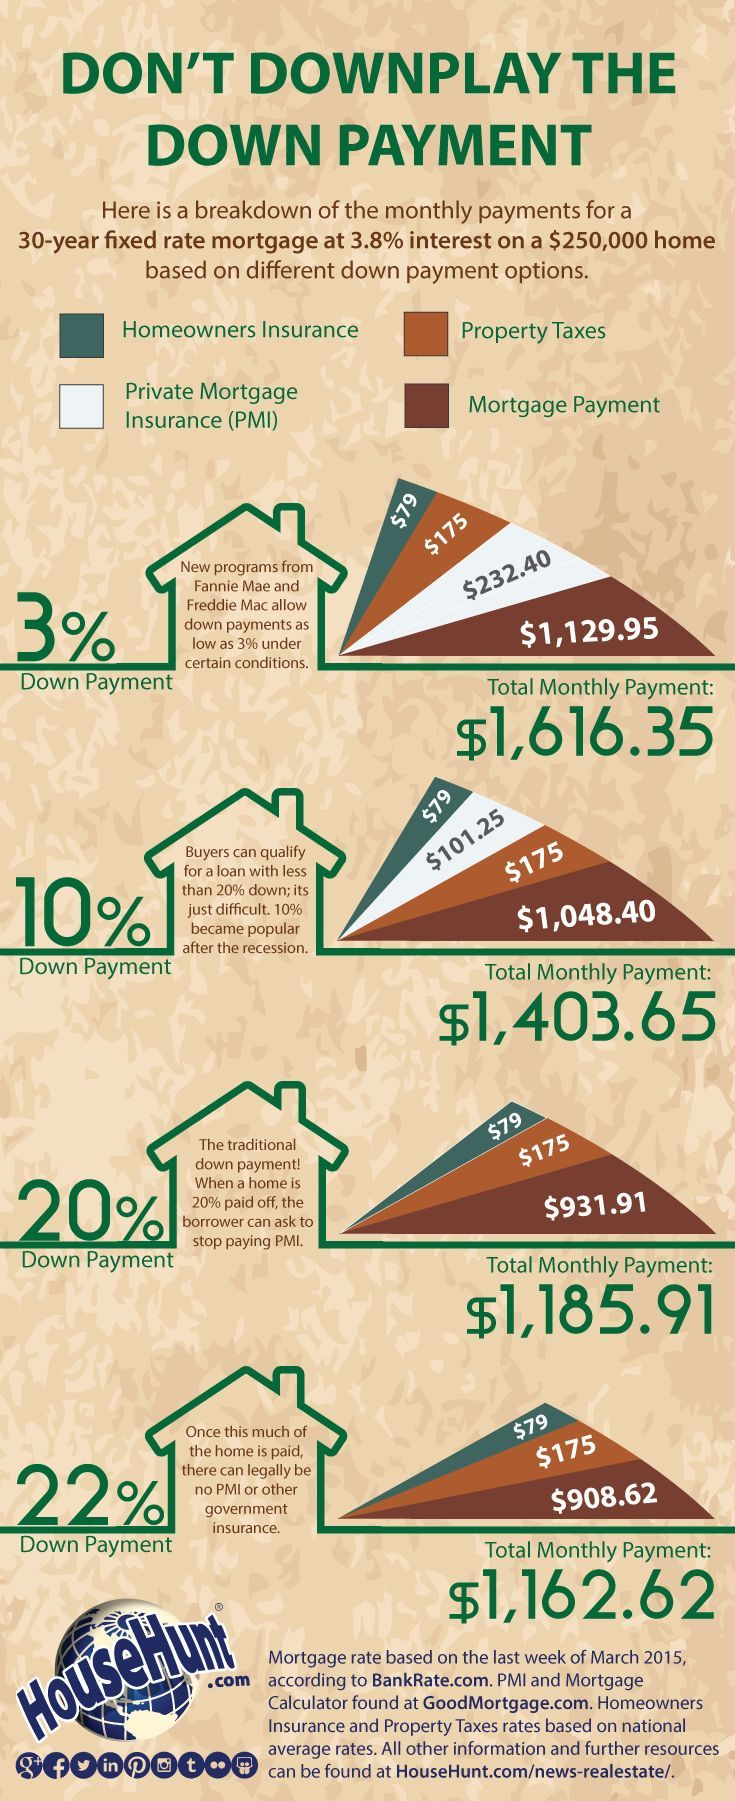 Here is a breakdown of the monthly payments for a 30-year fixed rate mortgage at 3.8% interest on a $250,000 home based on different down payment options.